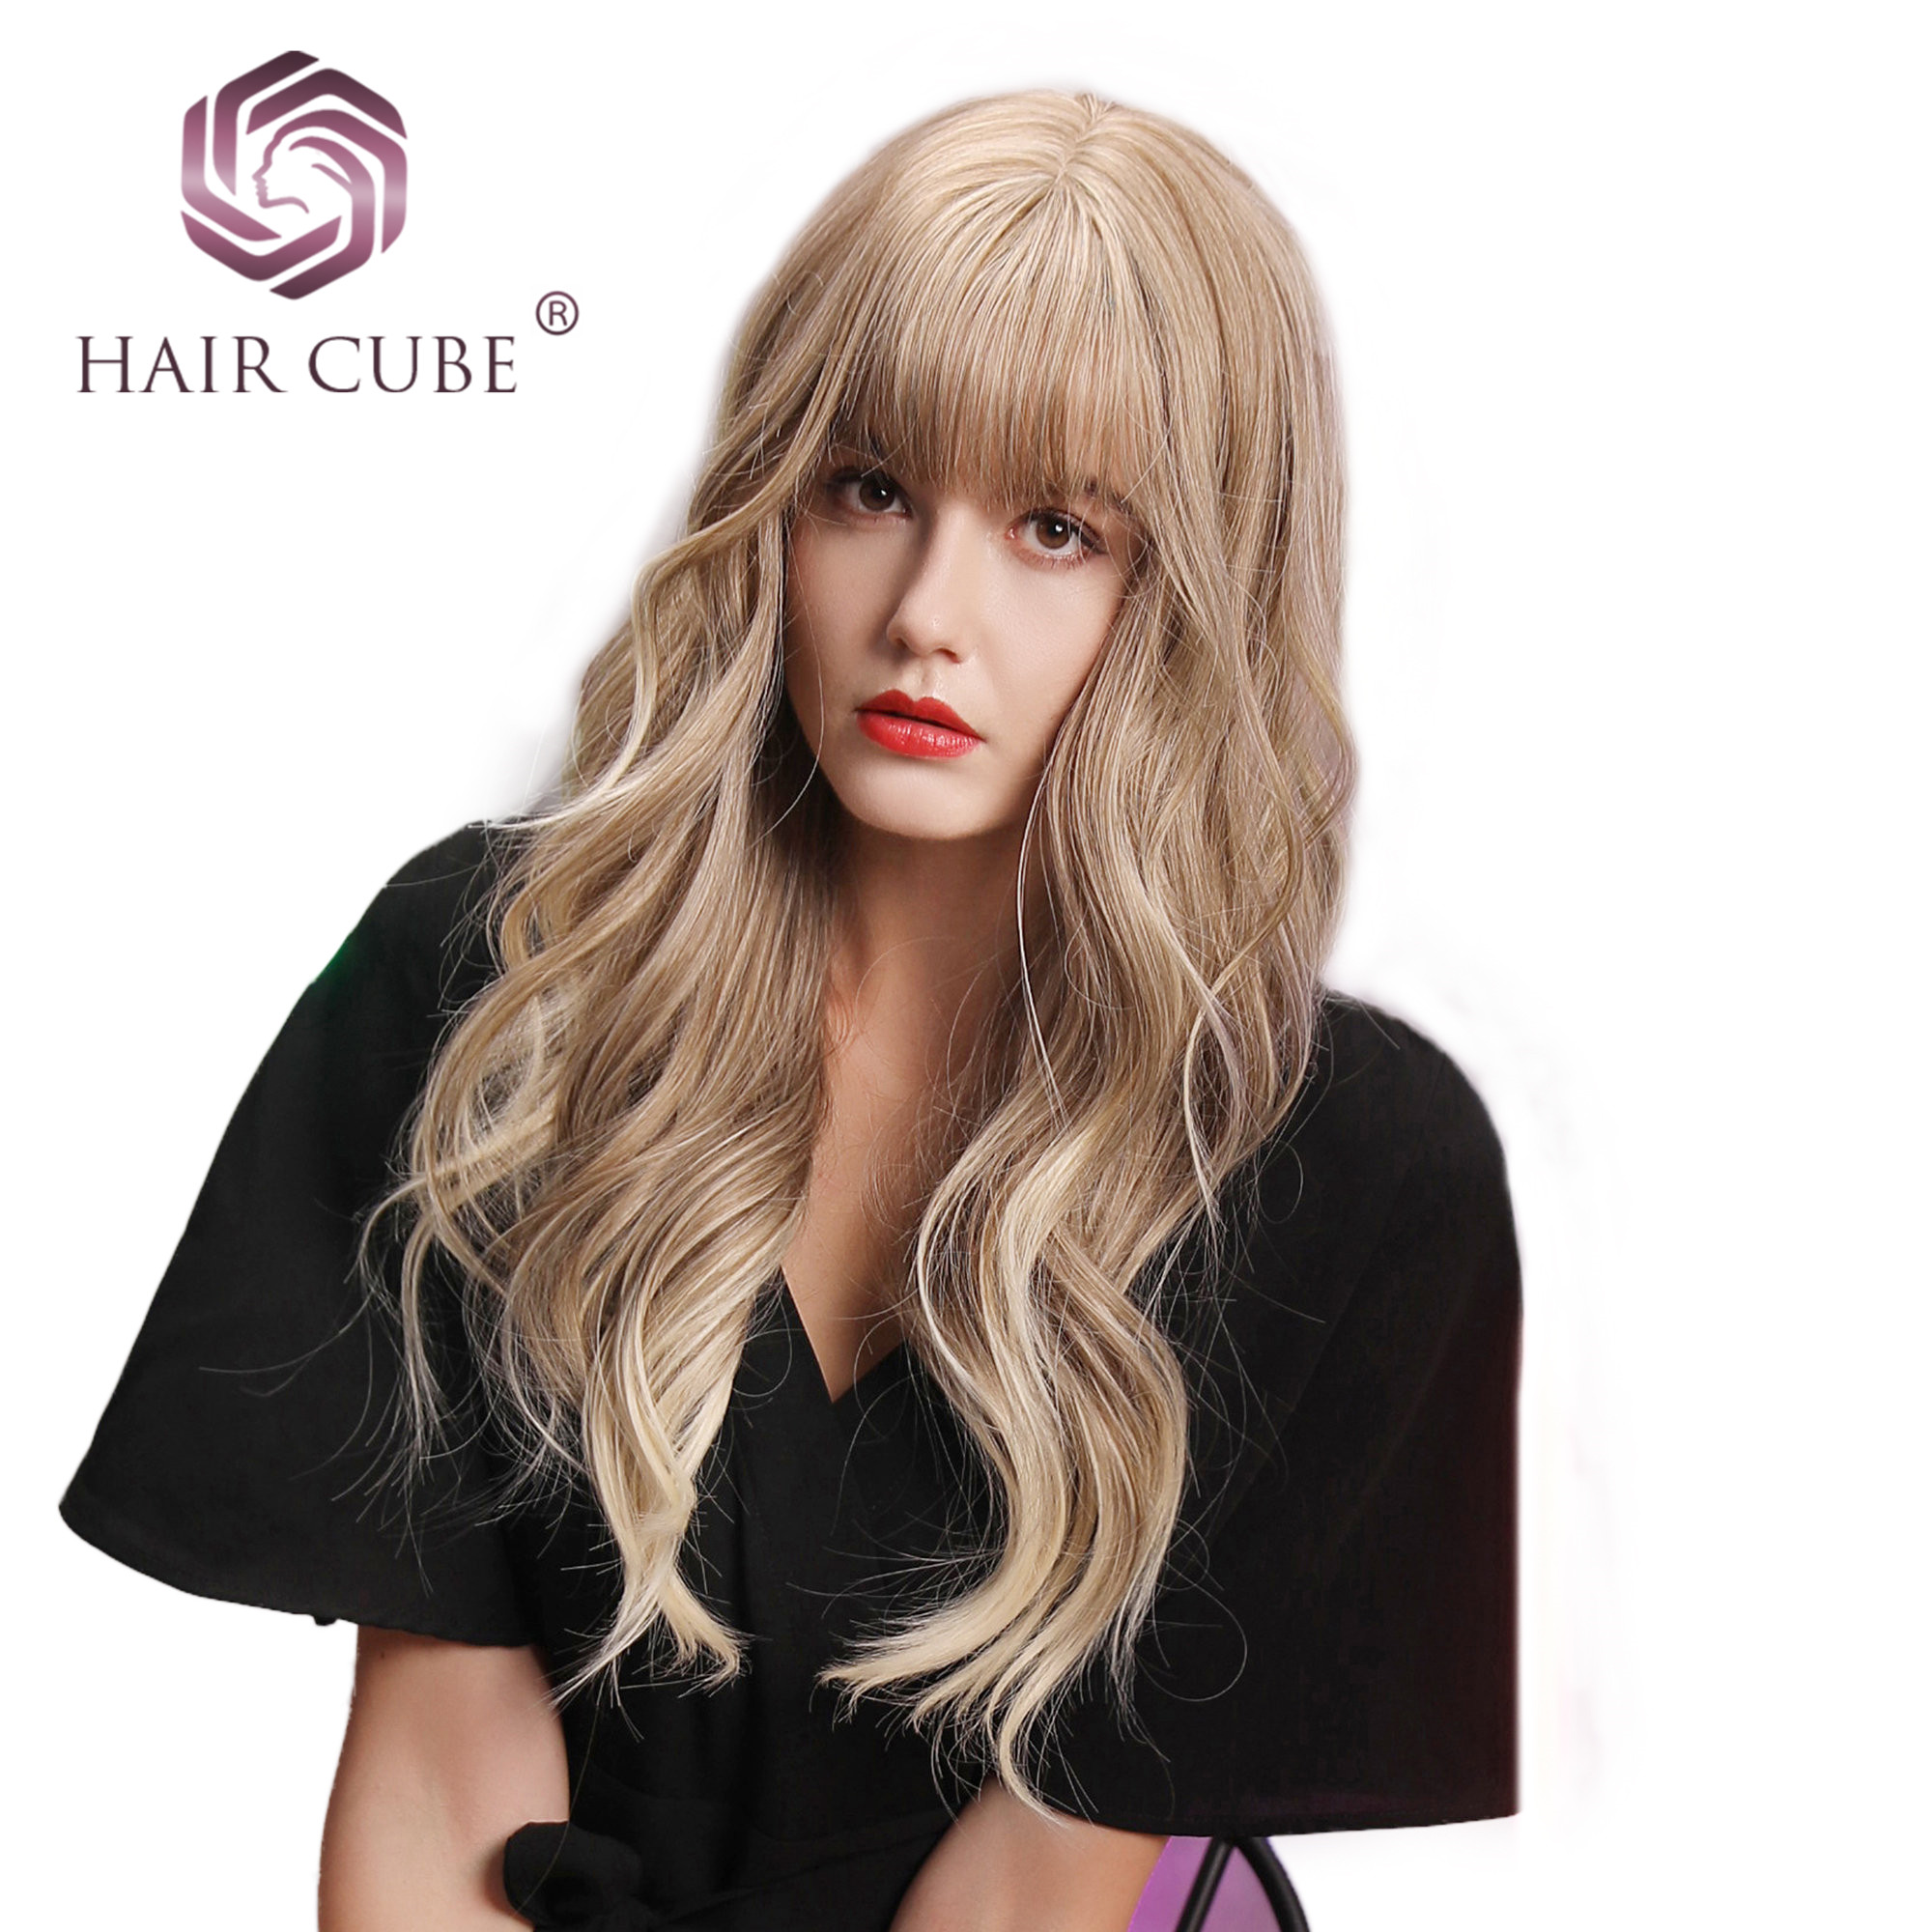 Haircube 22 Inch Long Synthetic Wigs With Bangs  Highlights Light Brown Color Heat Resistant Fiber Natural Wave Wigs For Women